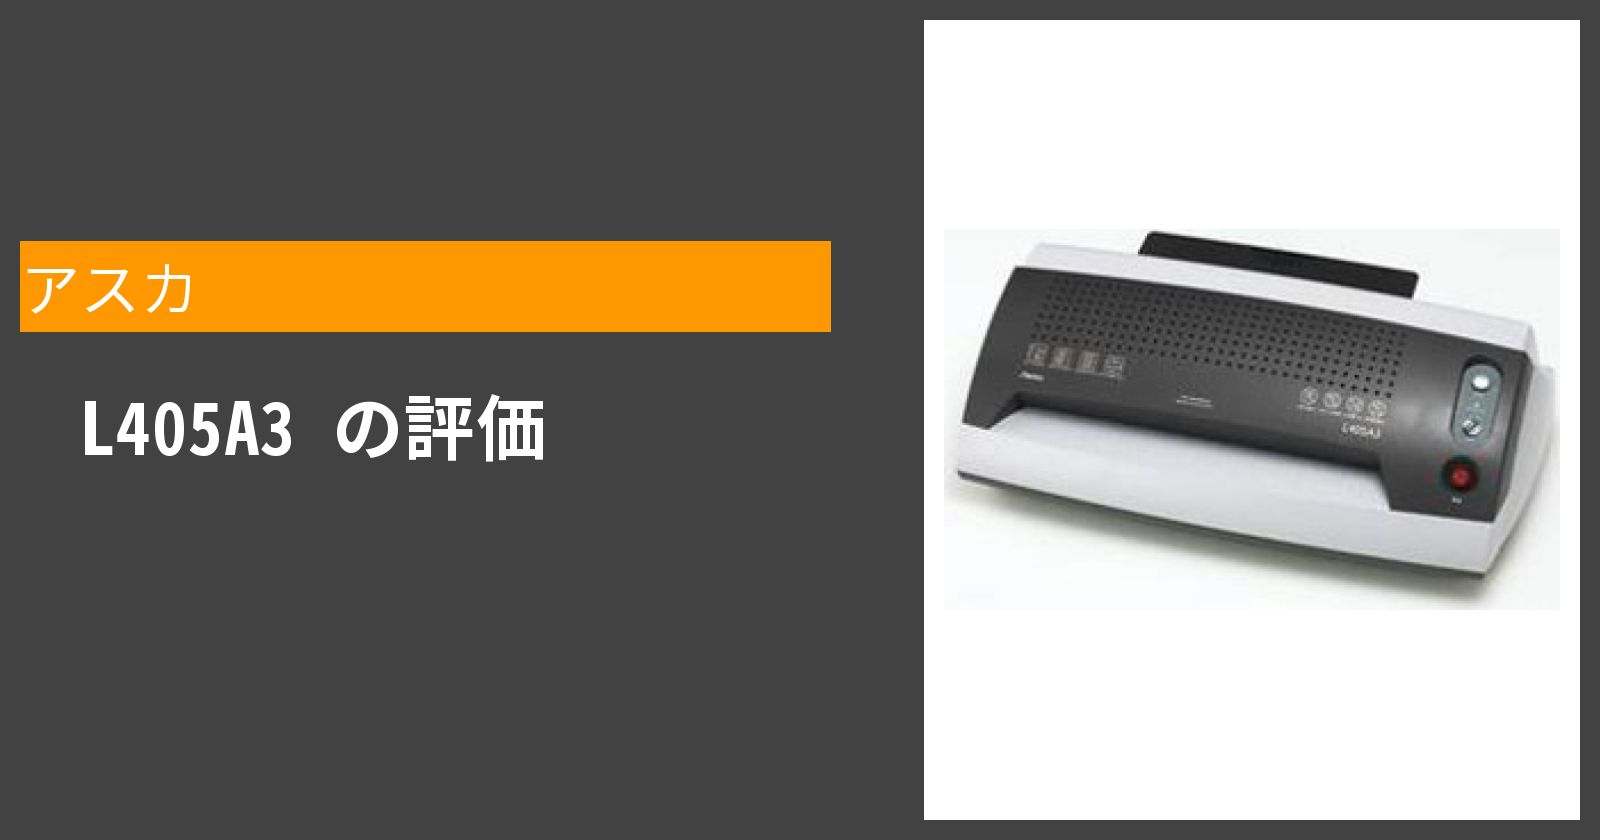 L405A3を徹底評価